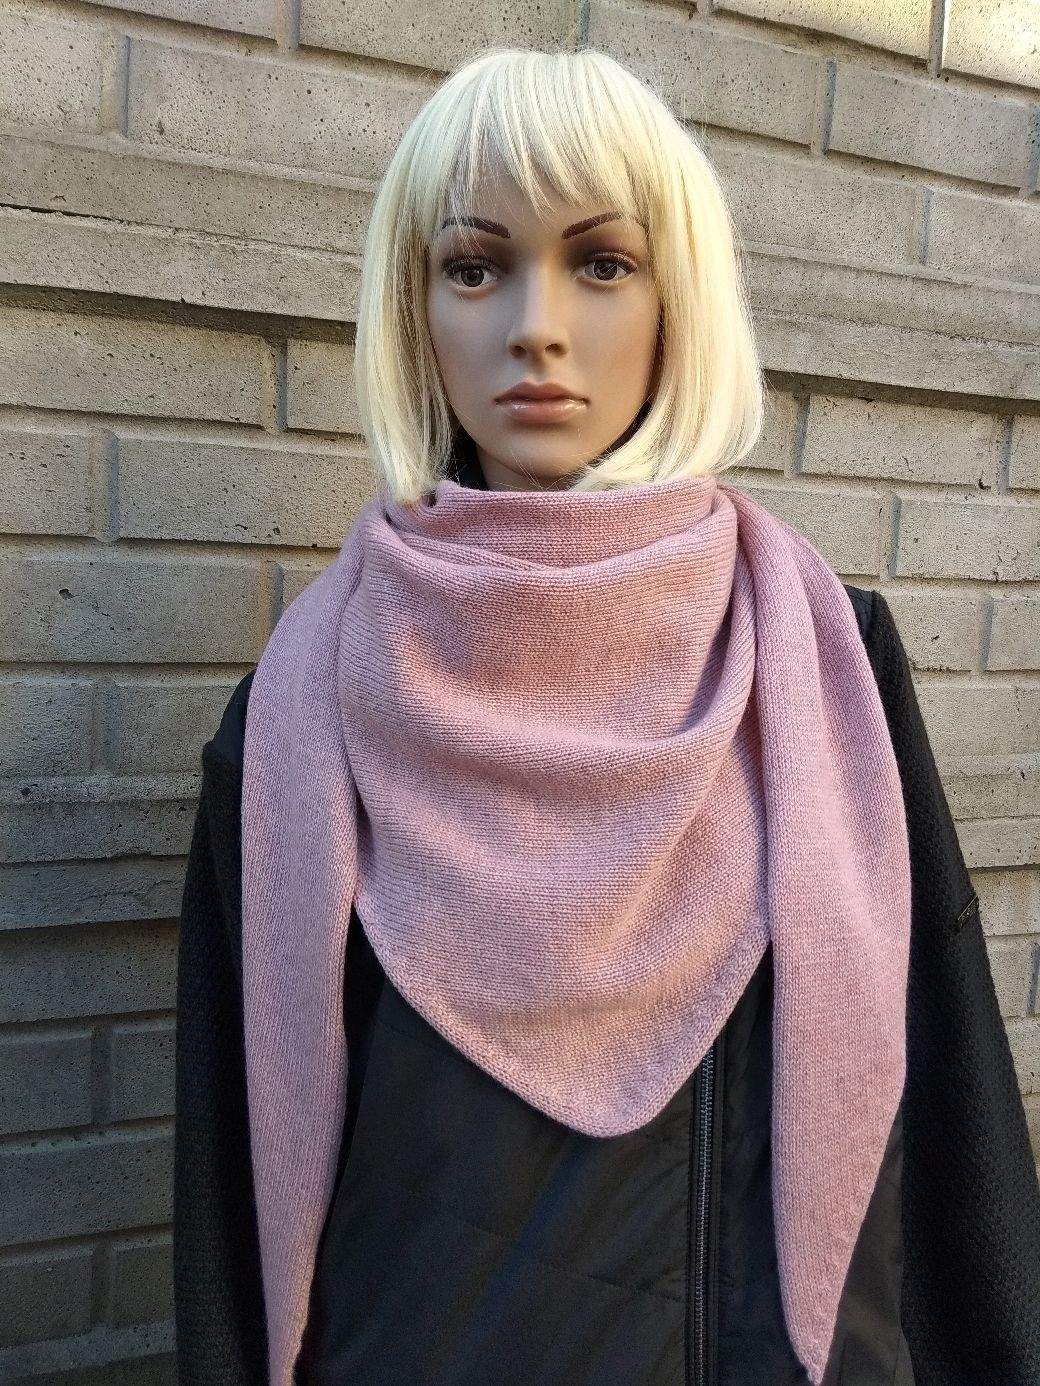 Scarf-bactus 'Dusty rose' from 100 % cashmere (Italy), Scarves and snoods, St. Petersburg,  Фото №1